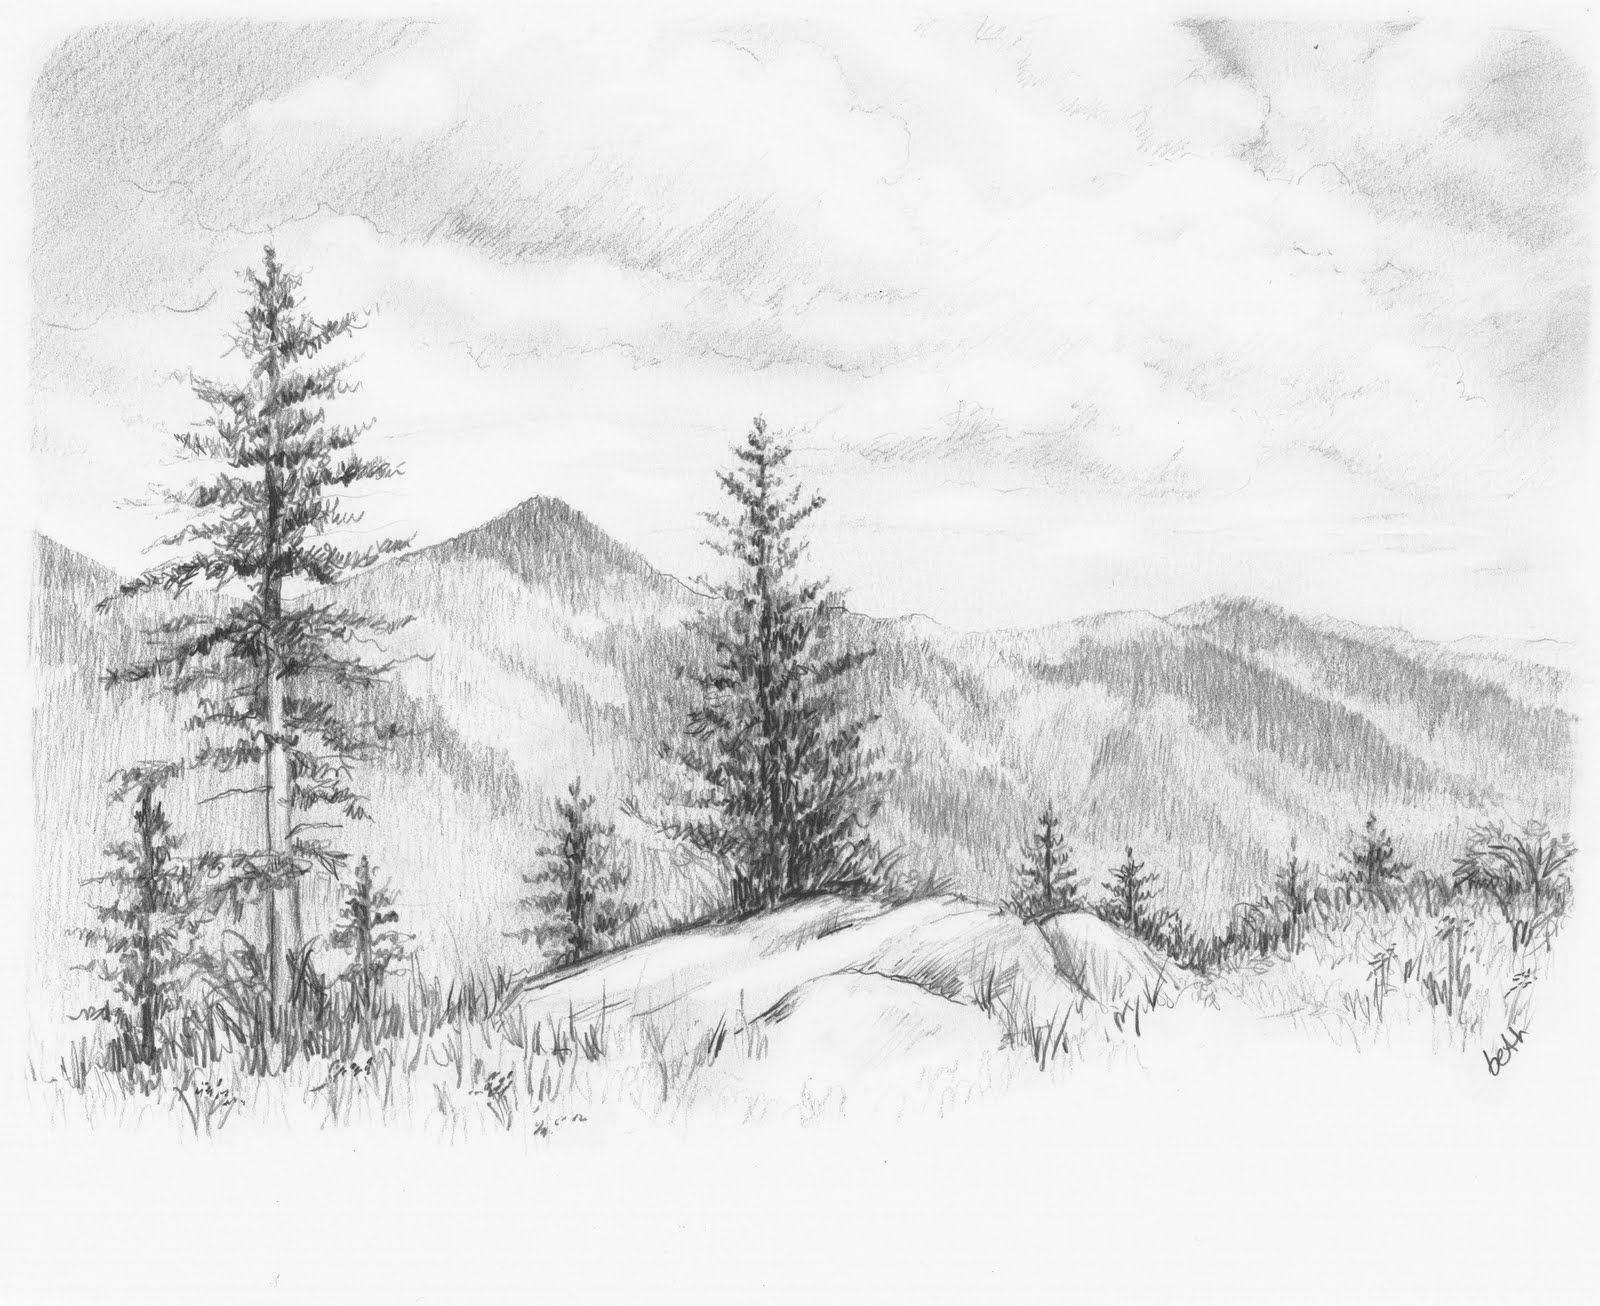 Nature Hd In Pencil Drawing